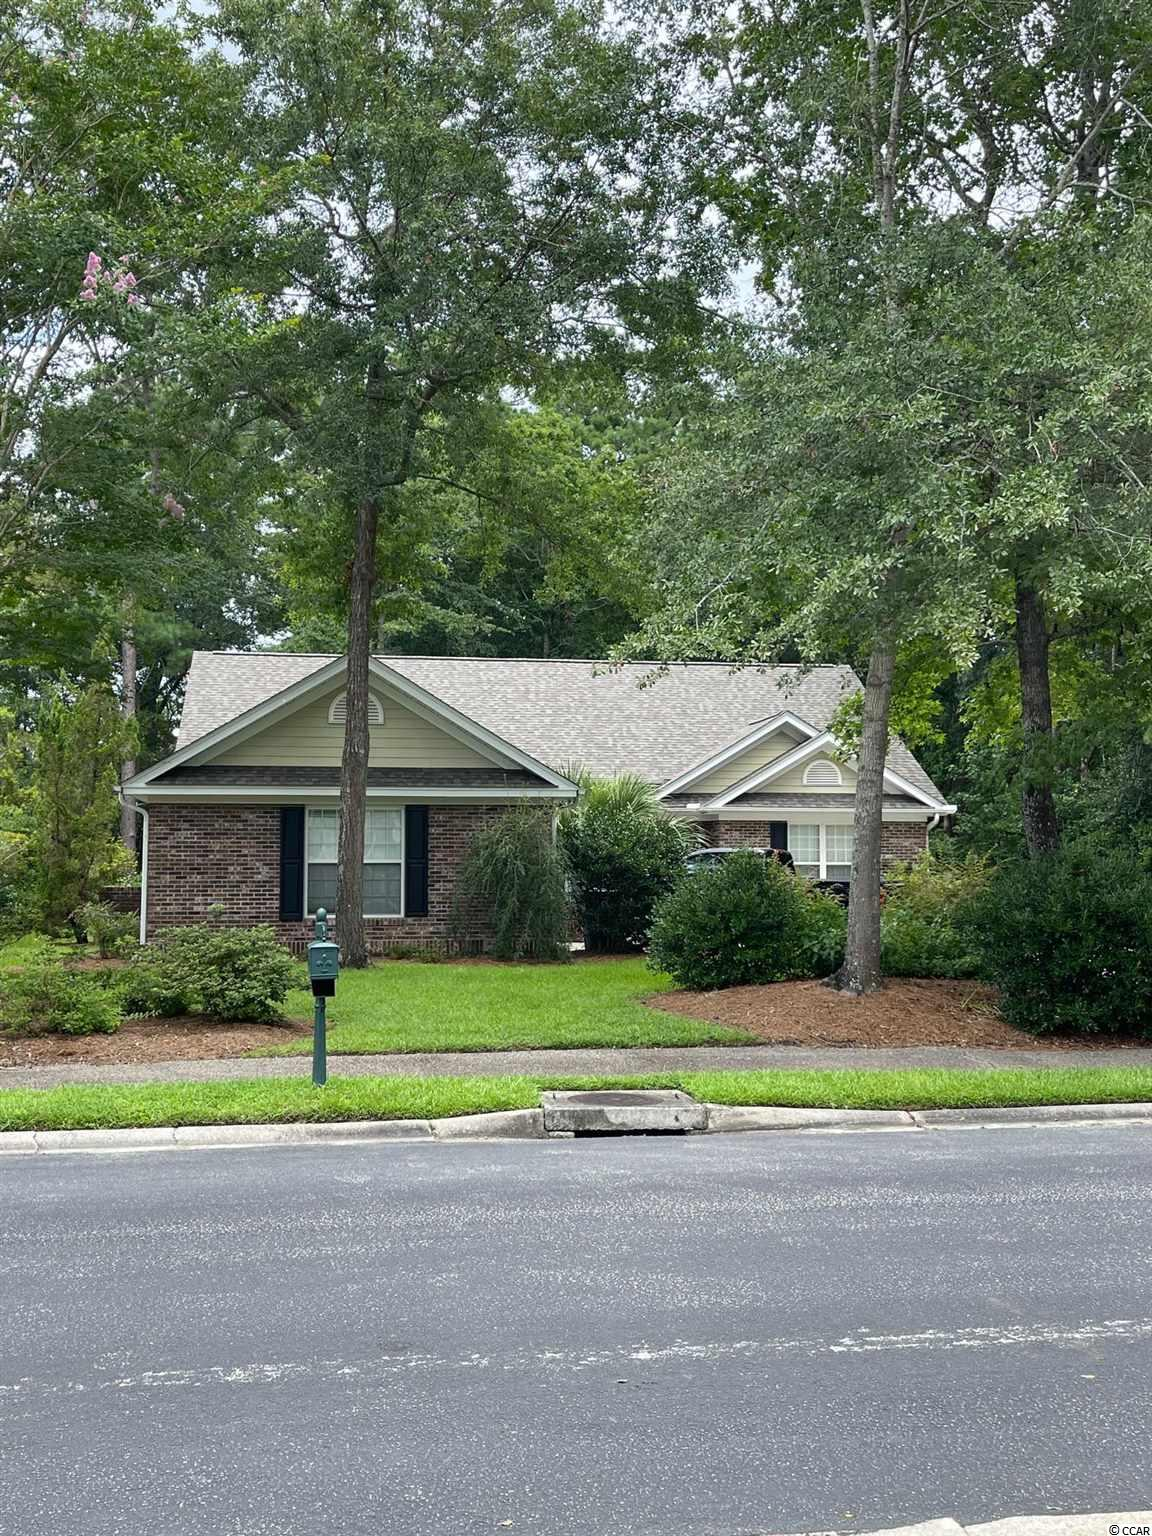 Spacious 3 bedroom/2 bath home located in Heritage Plantation.  Corner lot close to schools, shopping and beach.  This brick home located in Pawleys Island has a great open floor plan which features a large living room, screen porch and formal dining room.  Large bedrooms and two car garage make this a must see!